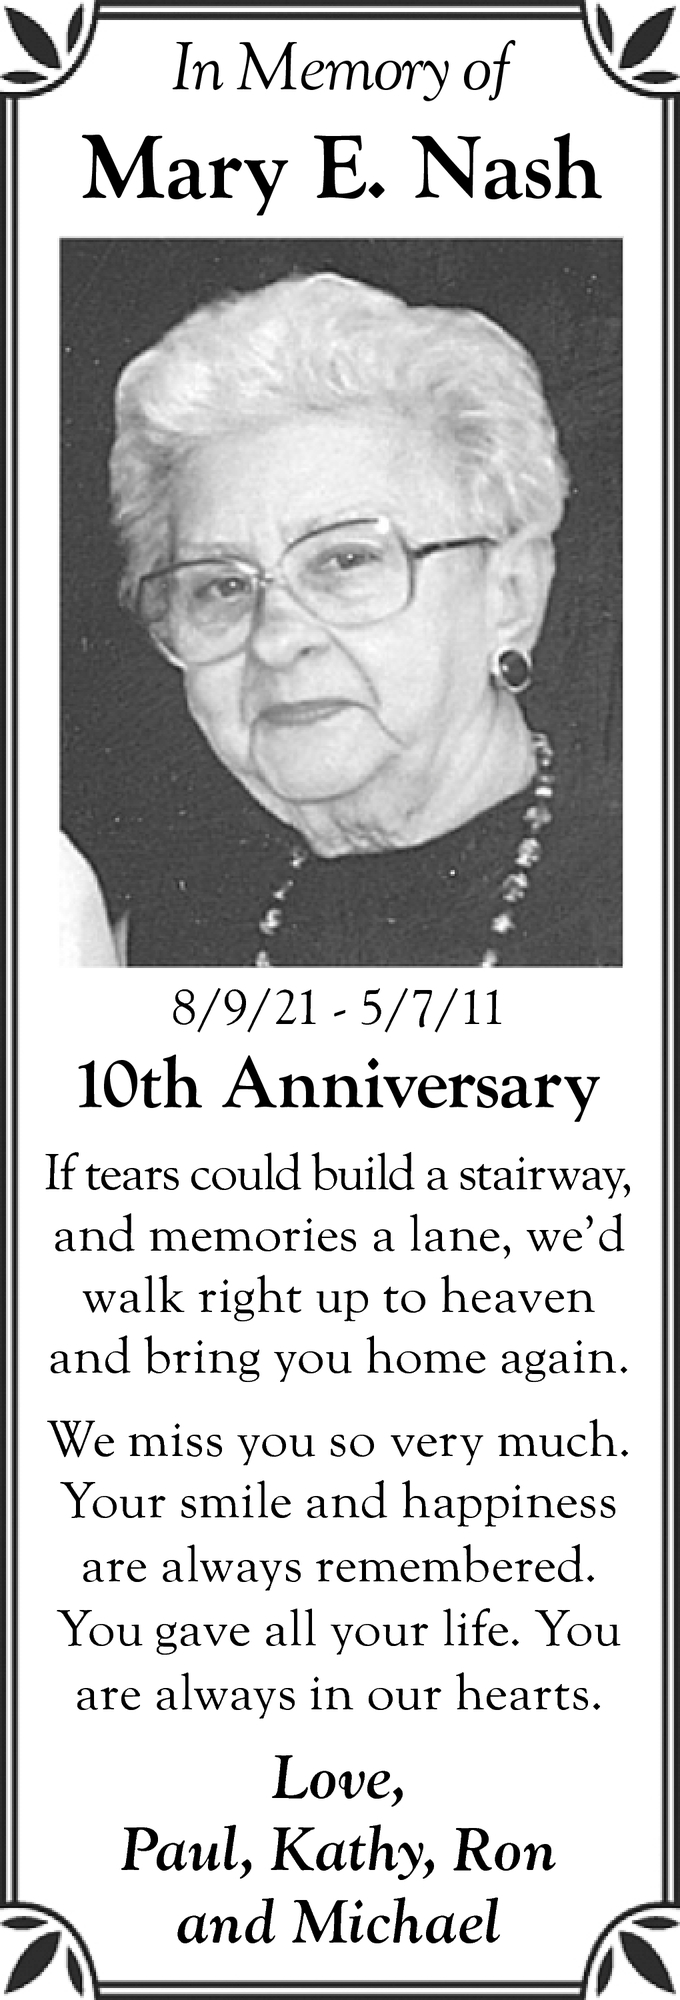 In Loving Memory Of Mary E. Nash